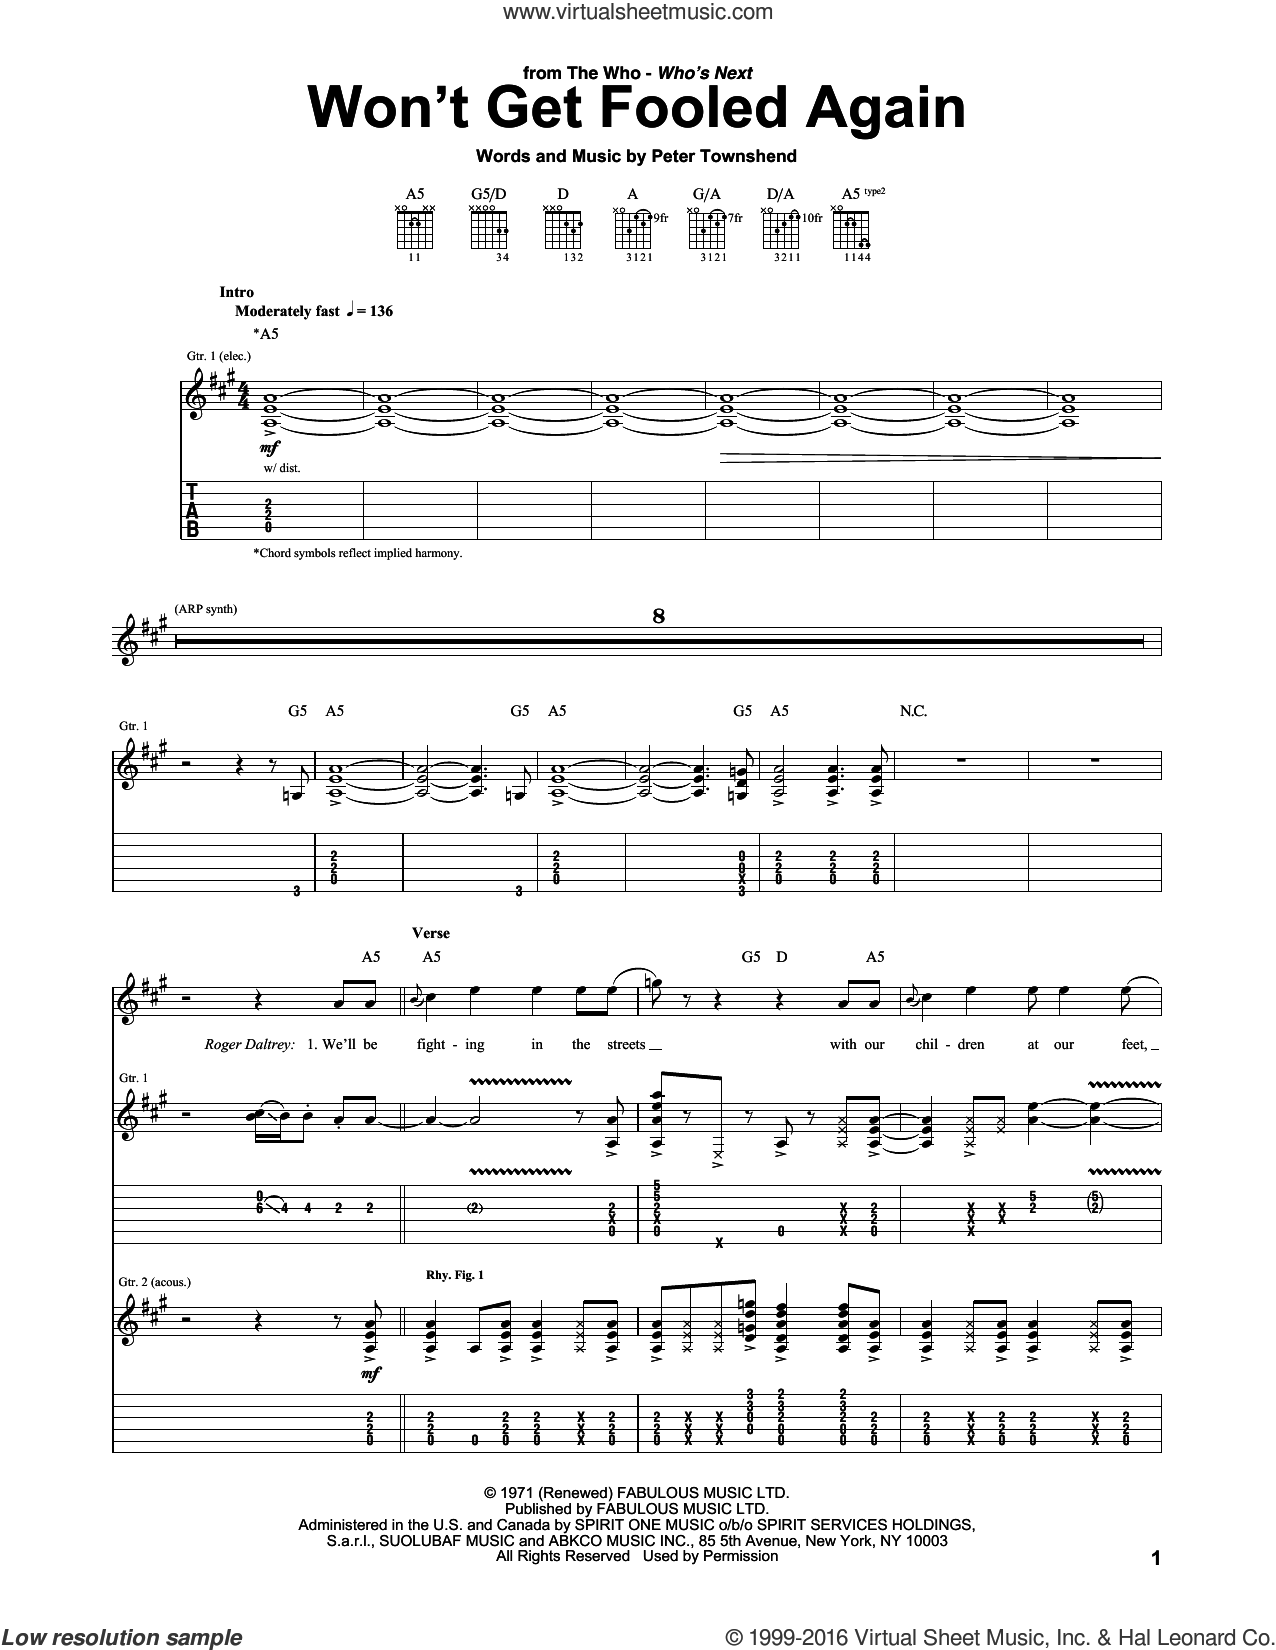 Won't Get Fooled Again sheet music for guitar (tablature) by The Who